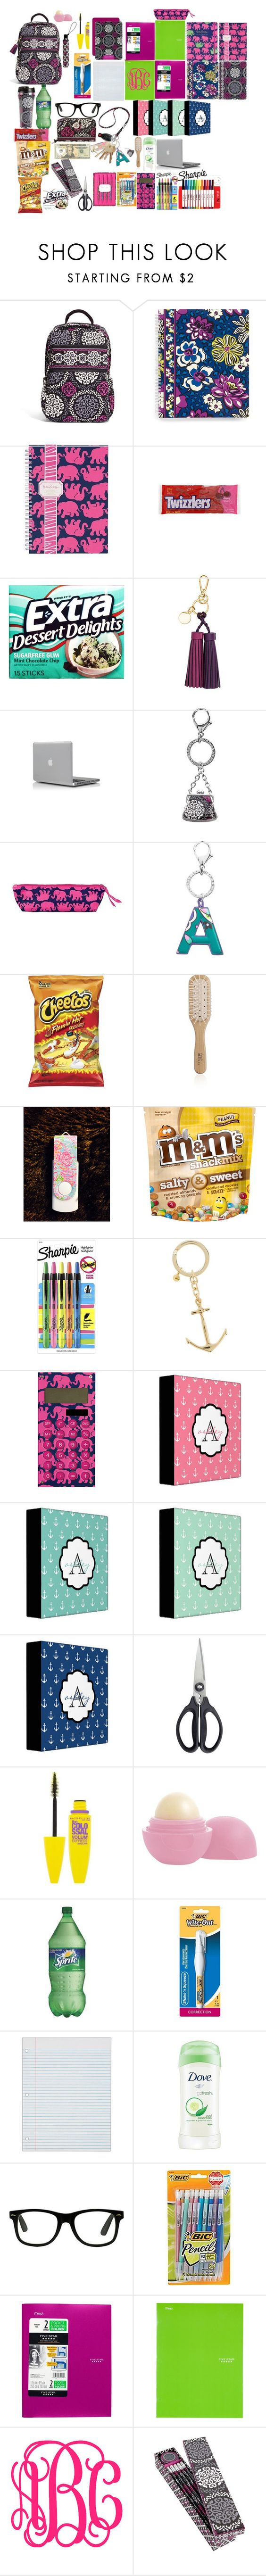 """""""back to school preppy school supplies for teens"""" by turnerjazmyne on Polyvore featuring Vera Bradley, Lilly Pulitzer, H&M, Philip Kingsley, Regatta, Sharpie, J.Crew, OXO, Eos and Wite"""